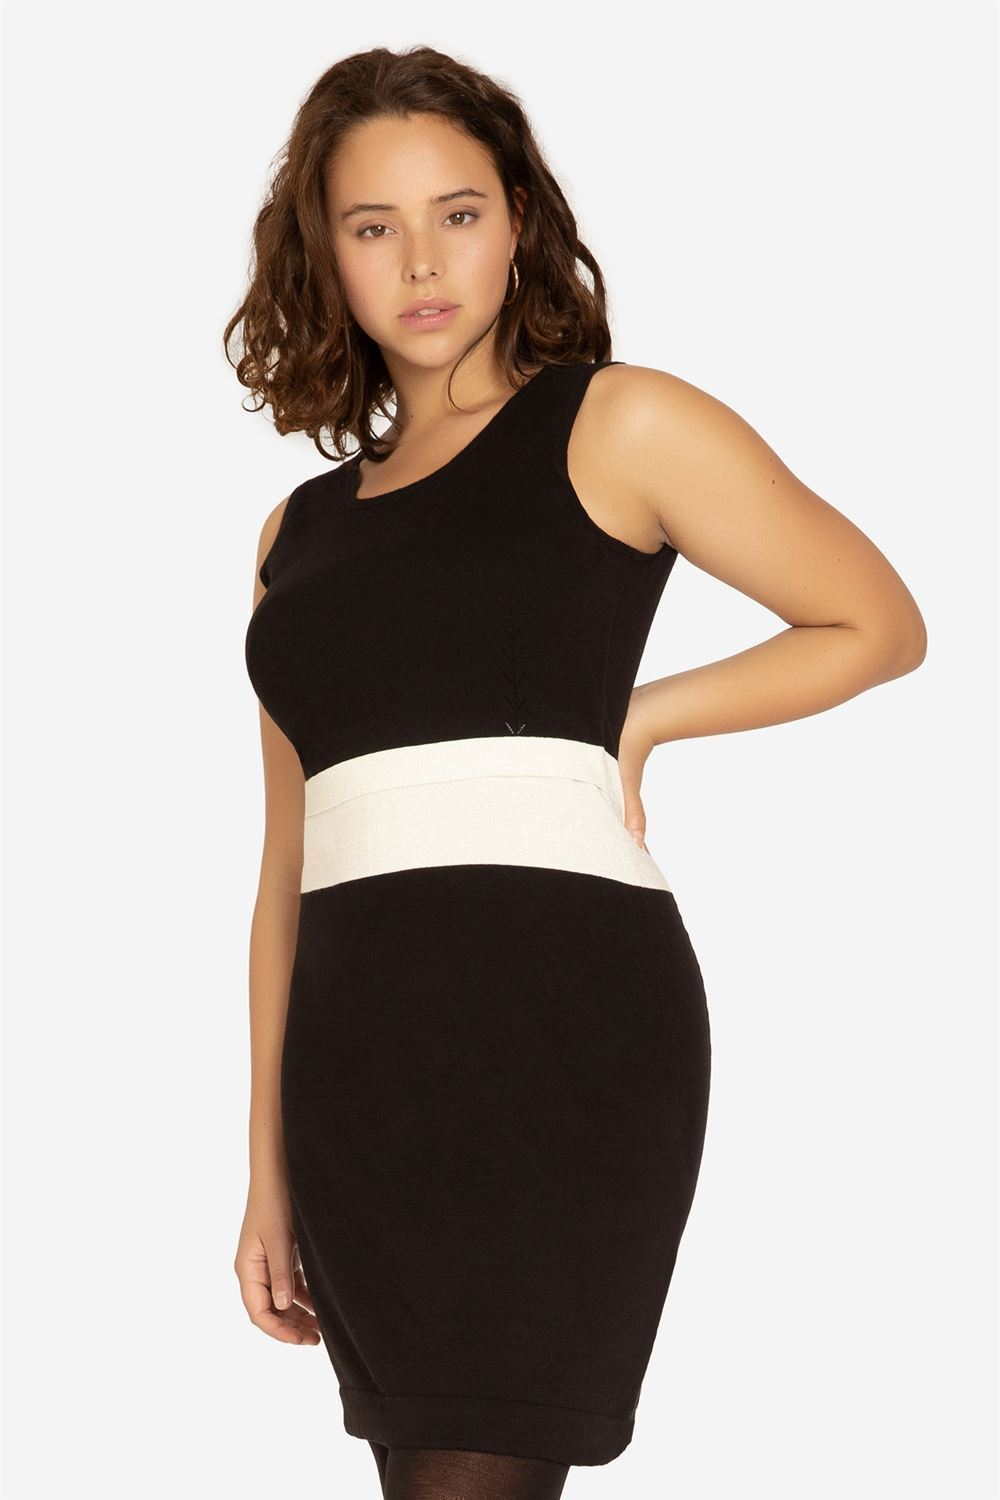 Black nursing dress with slim white waistline - a figure shot